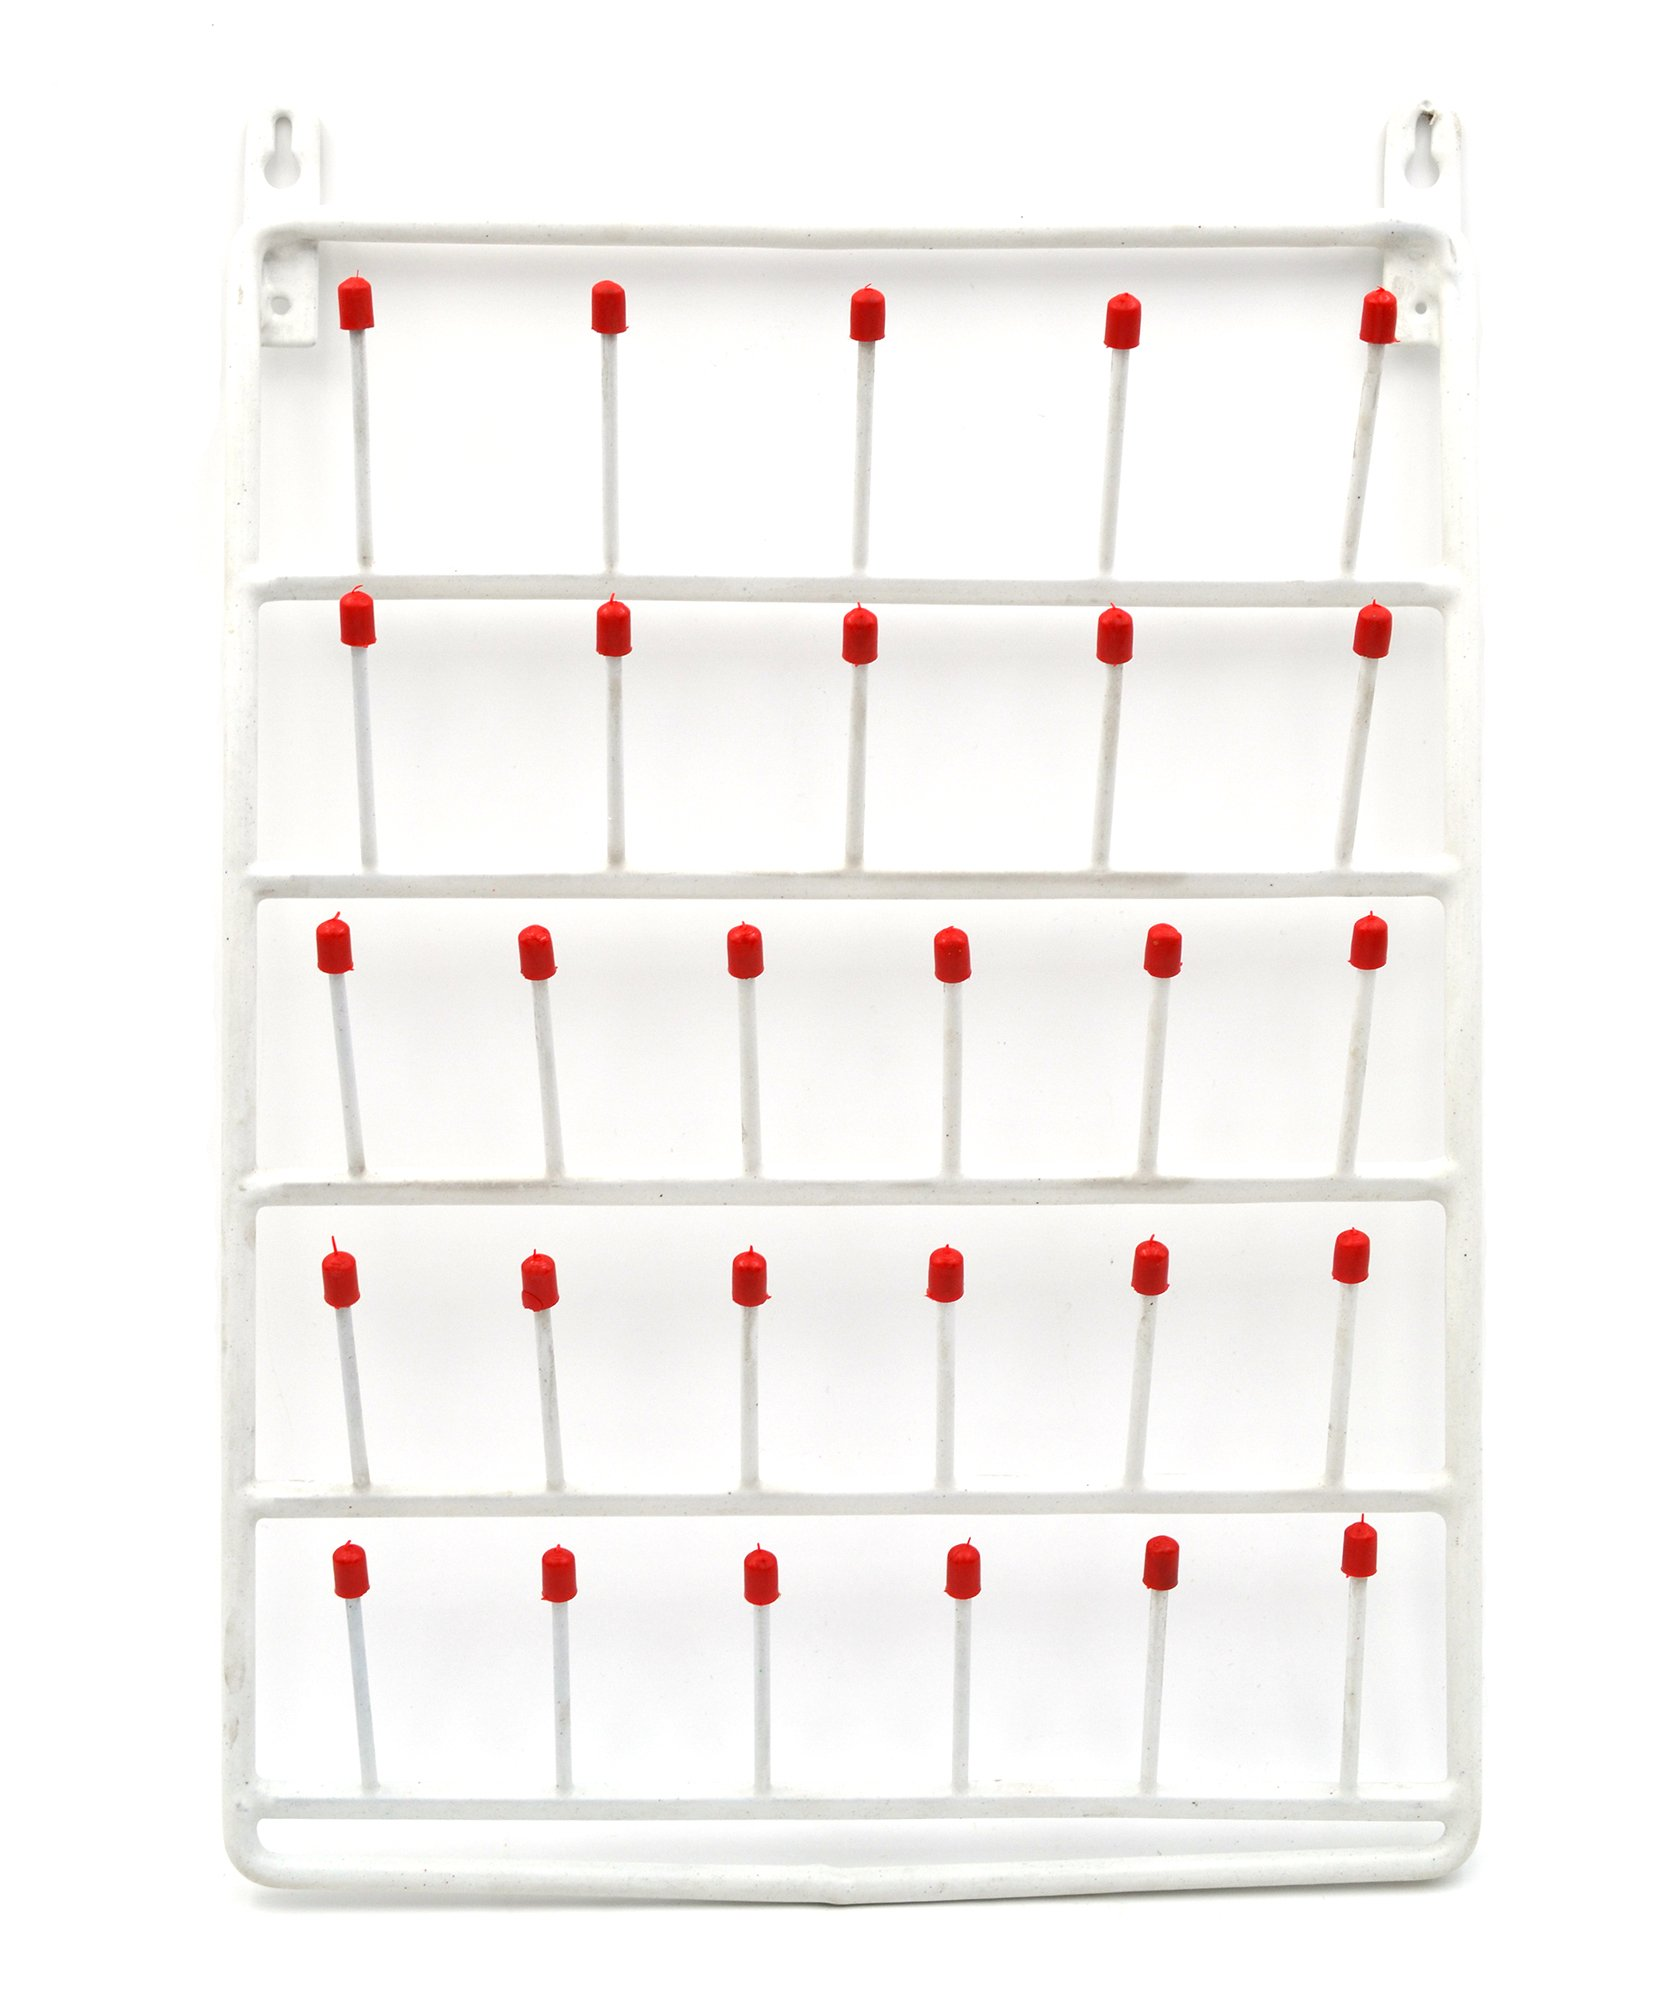 28 Peg Wall Mounted Laboratory Draining Rack - Eisco Labs by EISCO